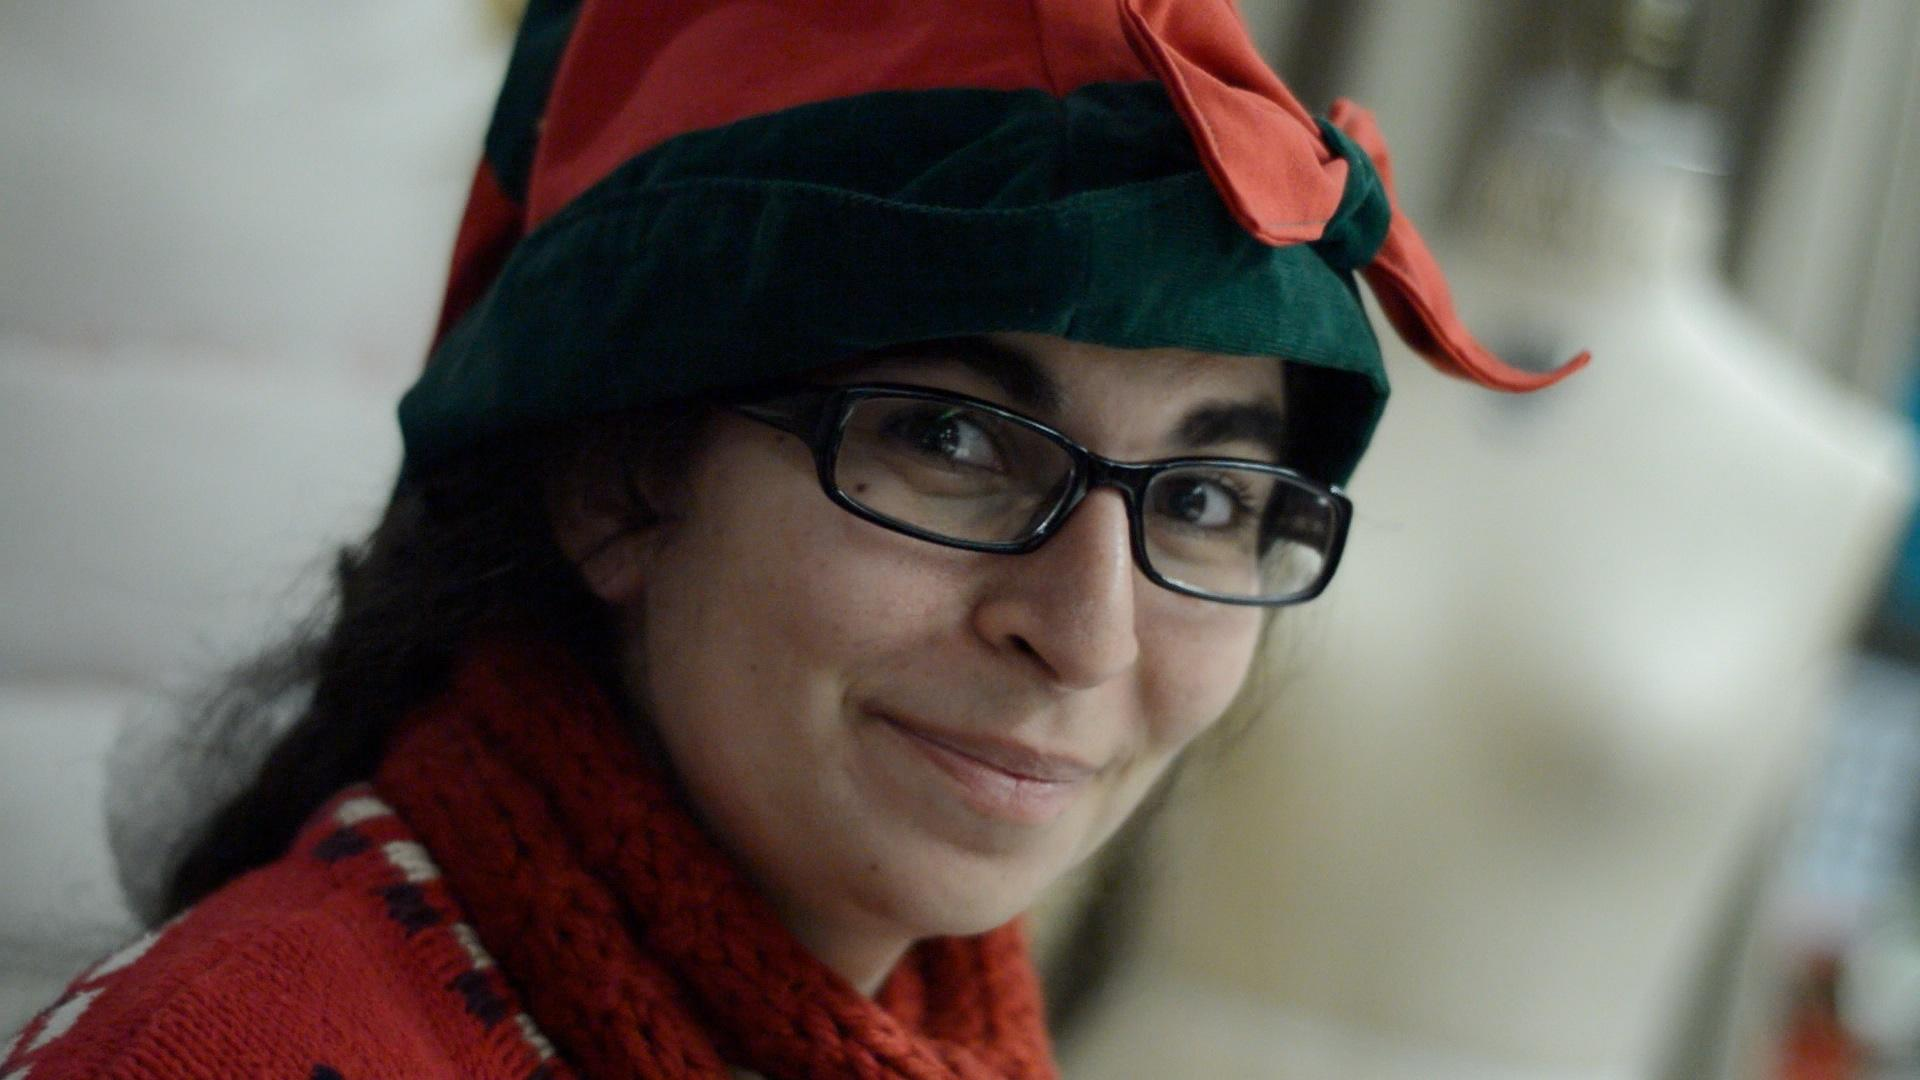 Anna Abowd, FCLC's Resident Elf, Spreads Christmas Cheer